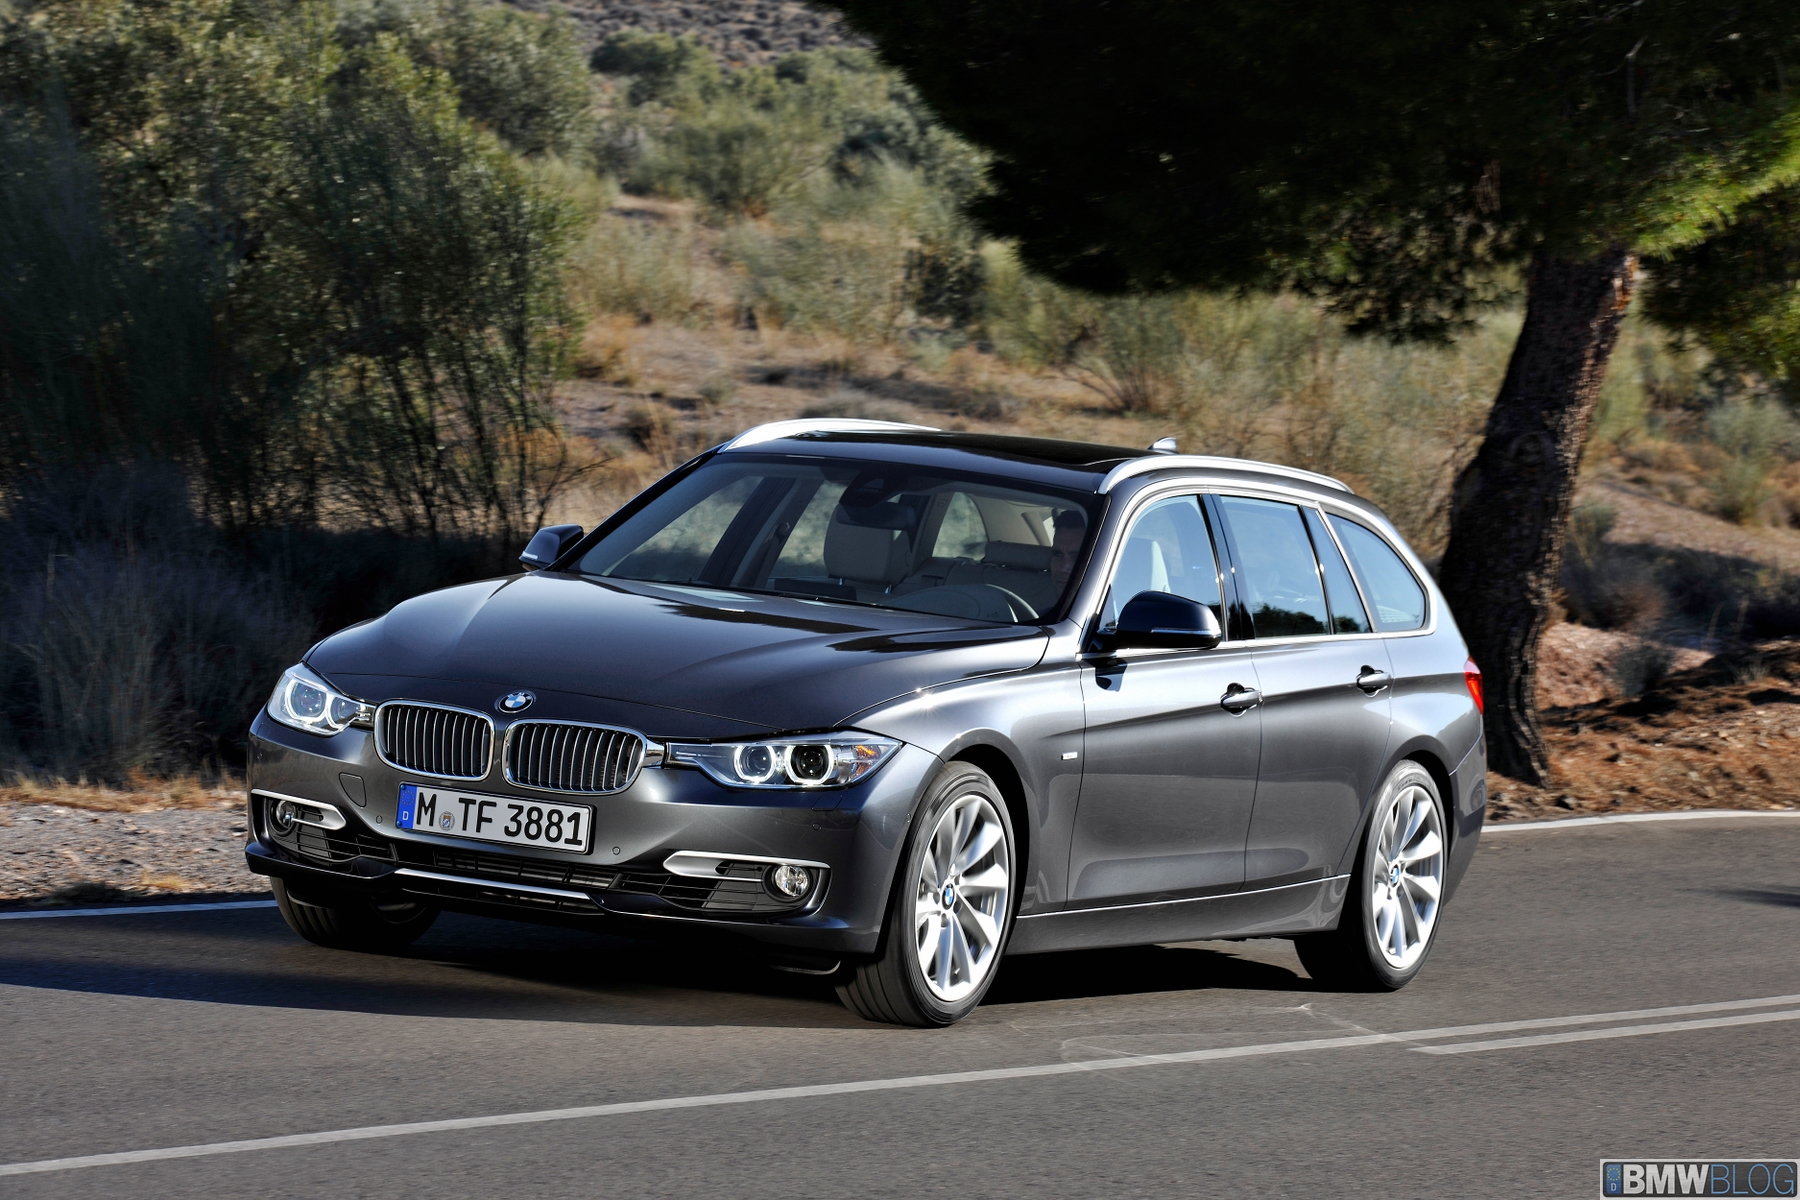 Bmw 328i Sports Wagon Still One Of The Best Bmws For